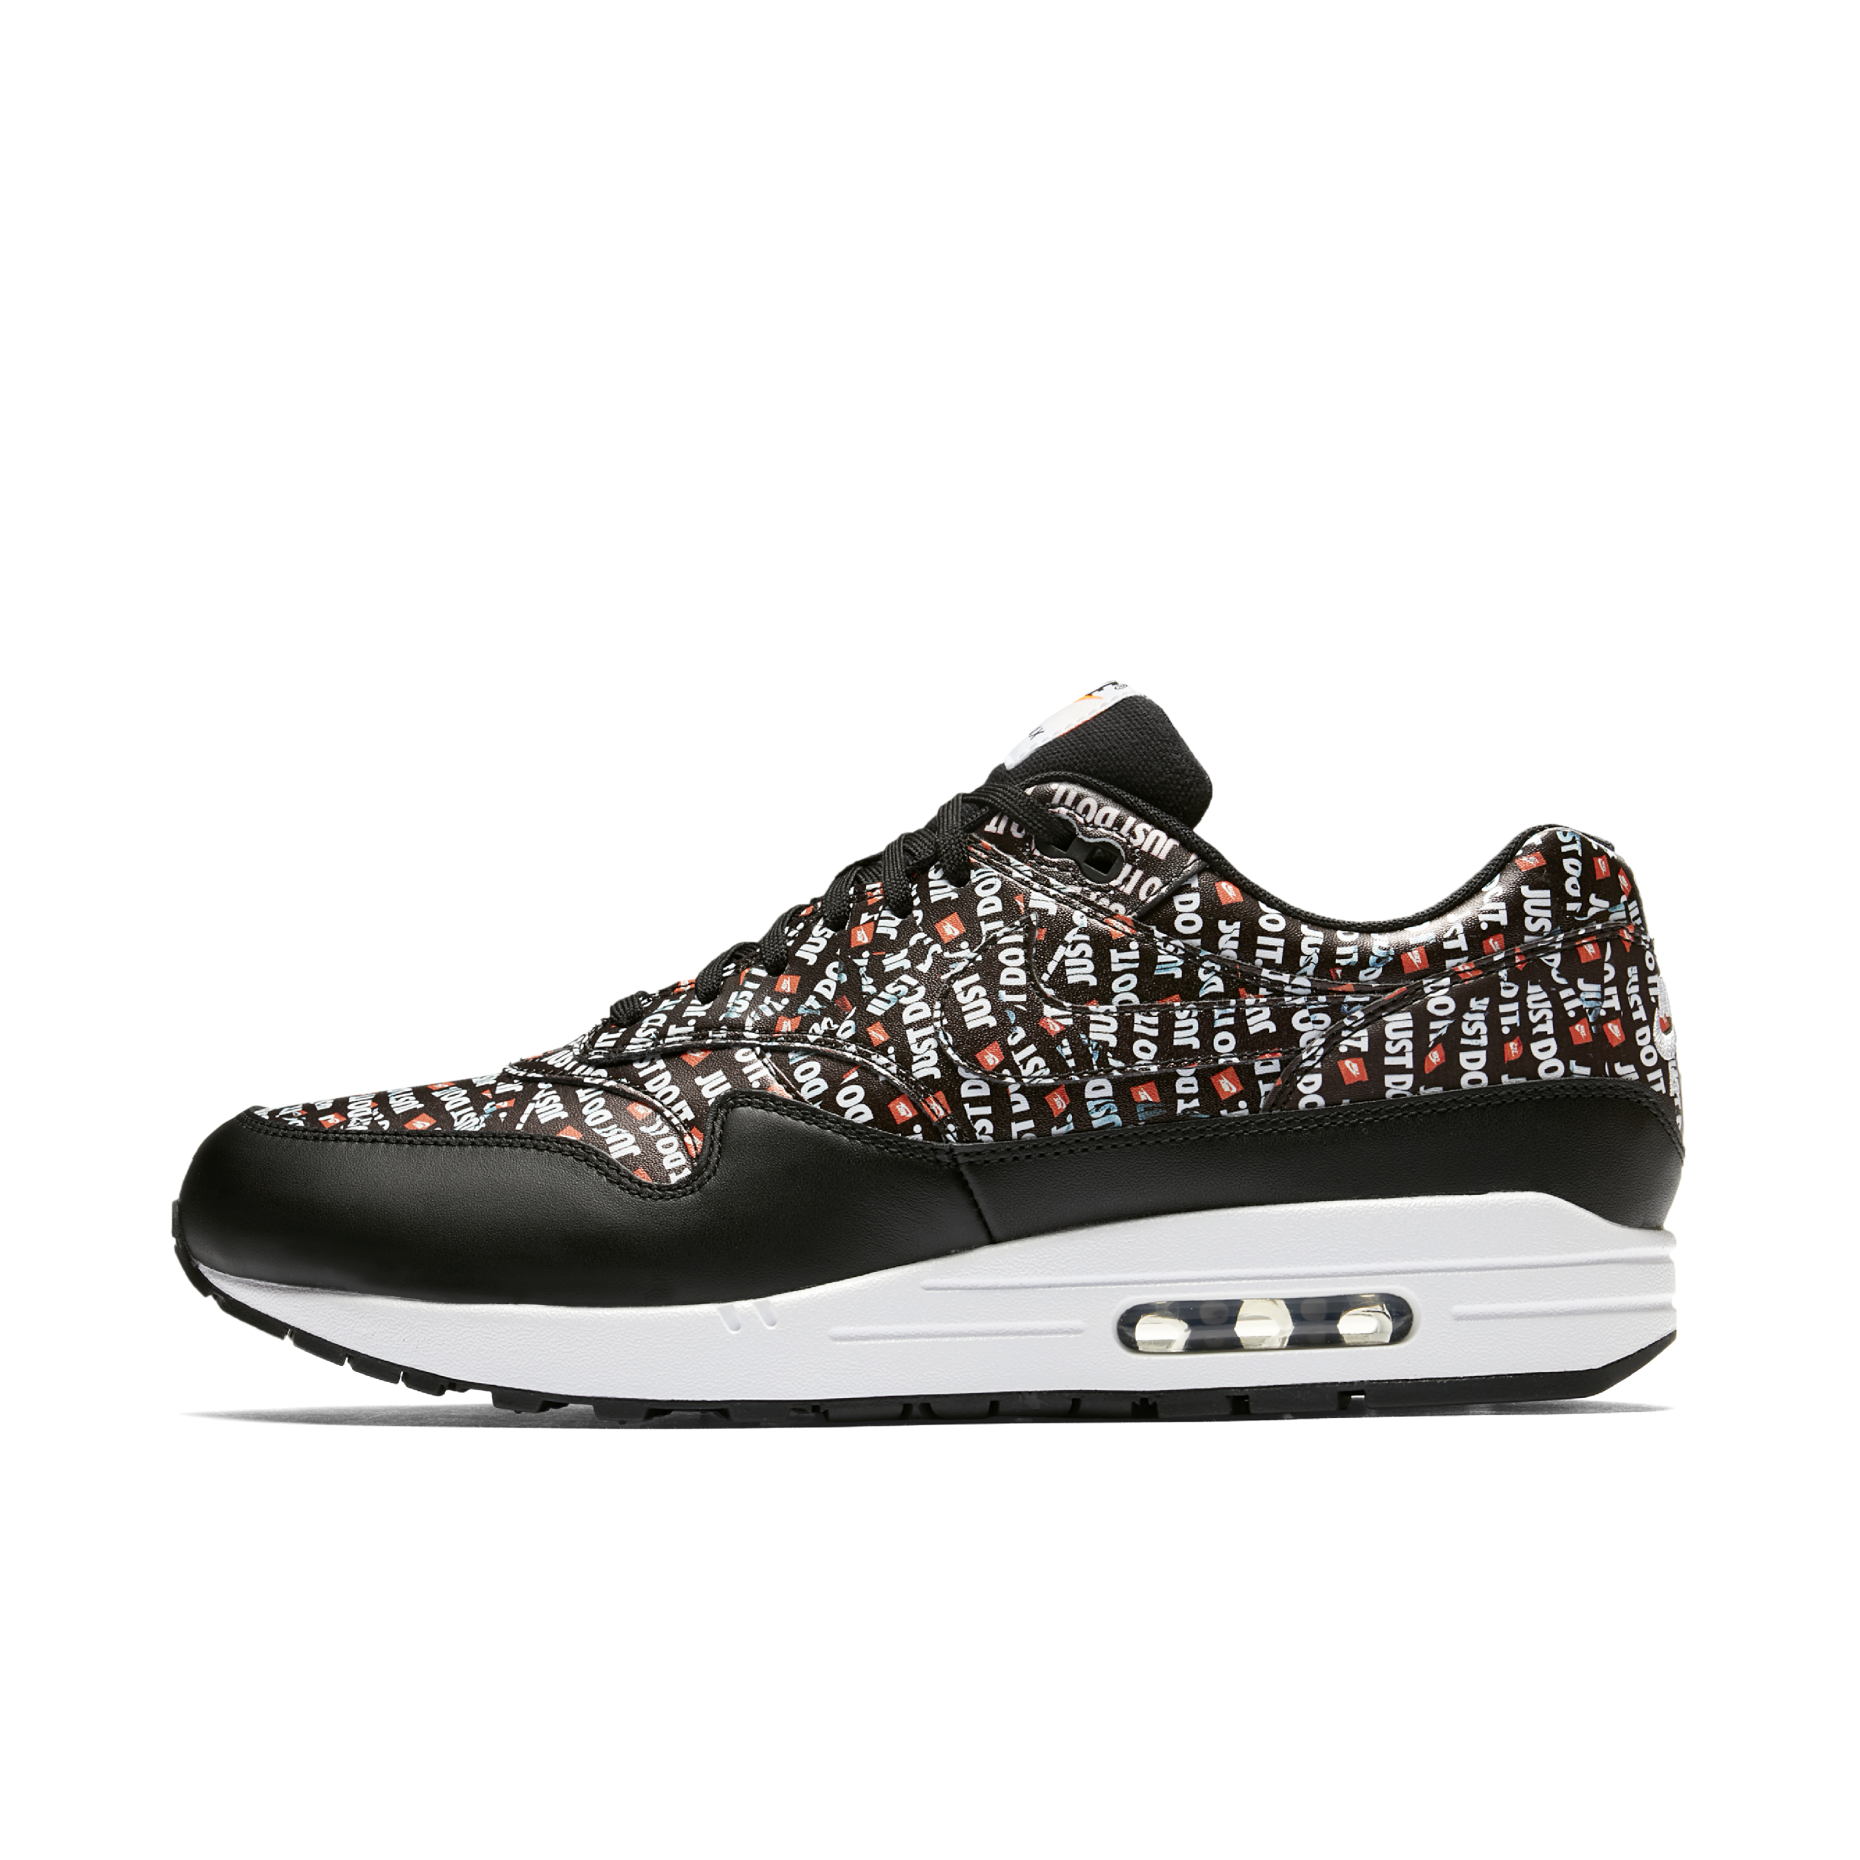 3bce18894e7 Nike_Air_Max_1_PRM_Just_Do_It_Black_White_Orange_875844-009_1.png?v=1535026431